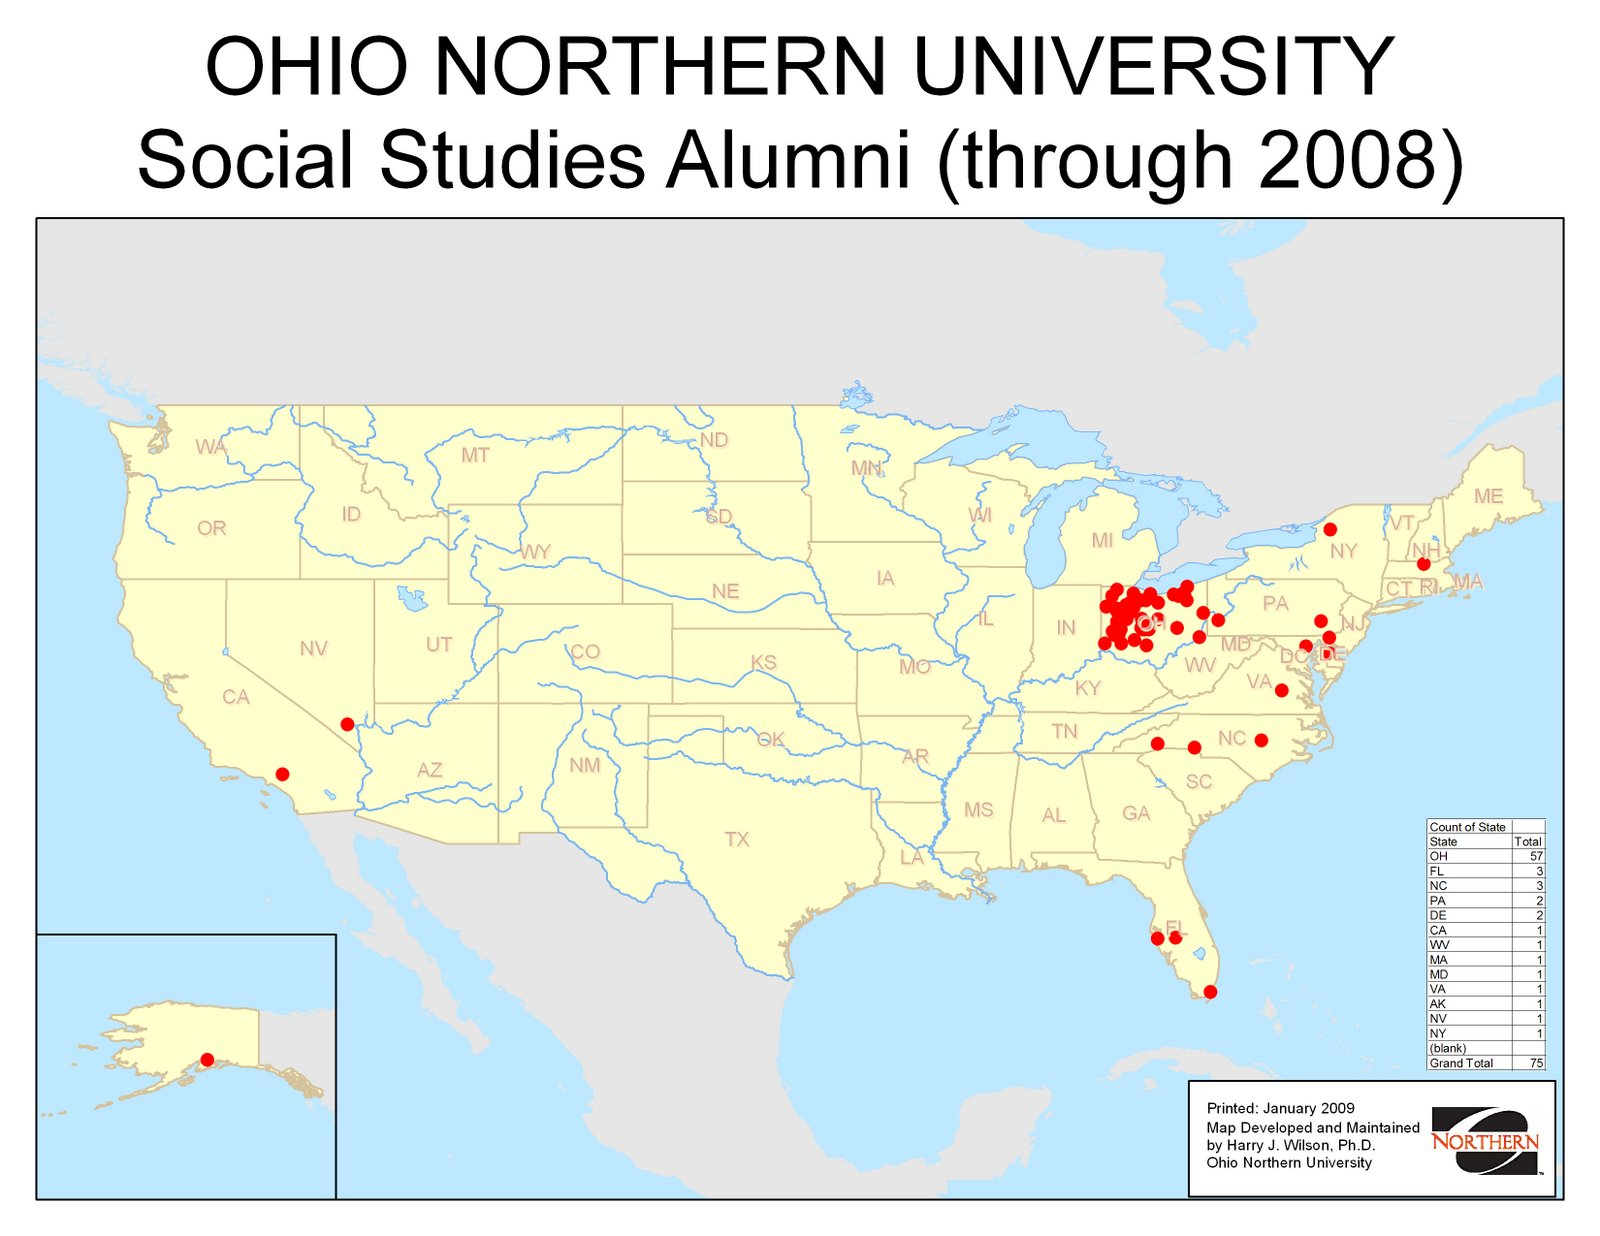 Where are ONU alumni teaching Social Studies?